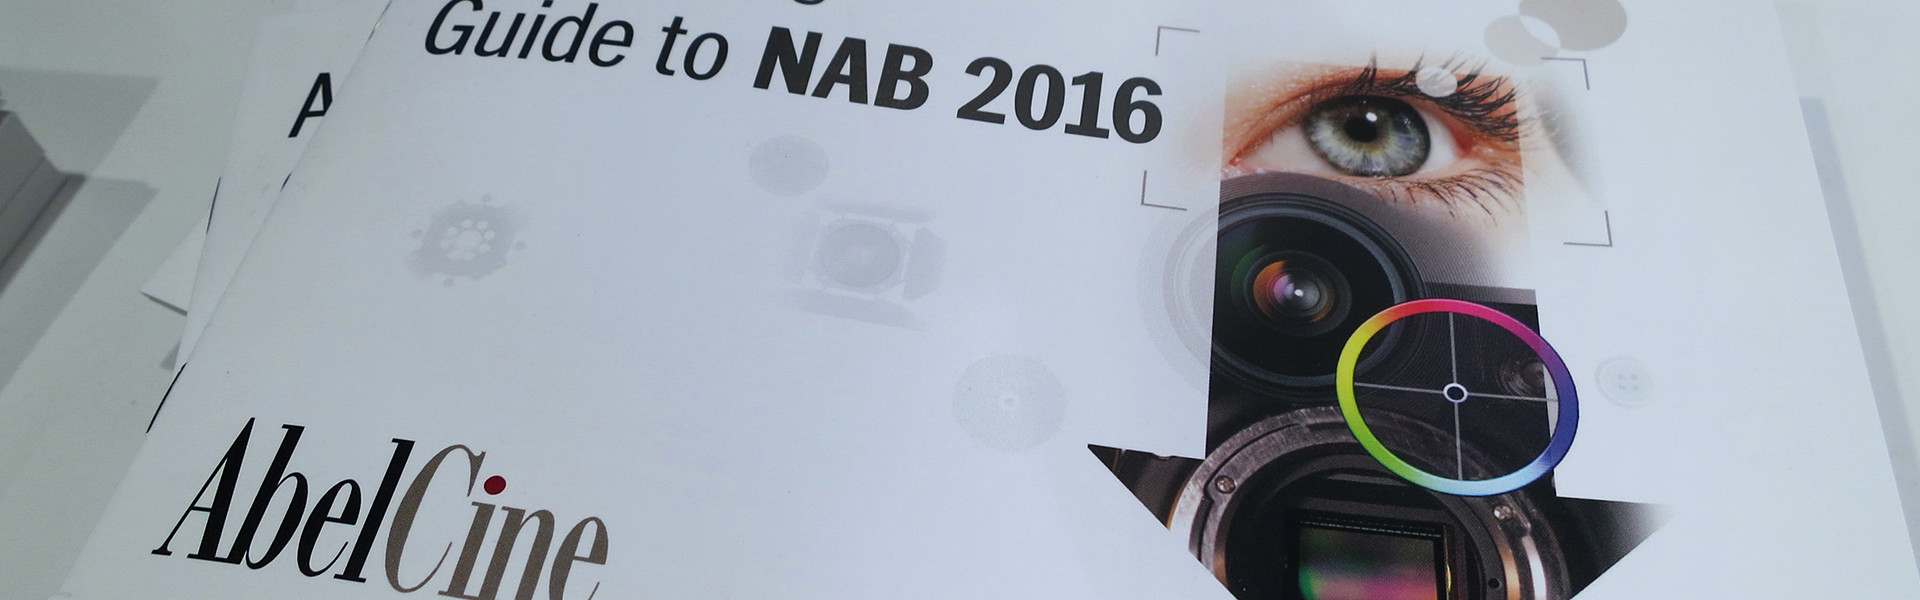 Header image for article NAB 2016 Tech Talks at the AbelCine Booth: Phantom Updates